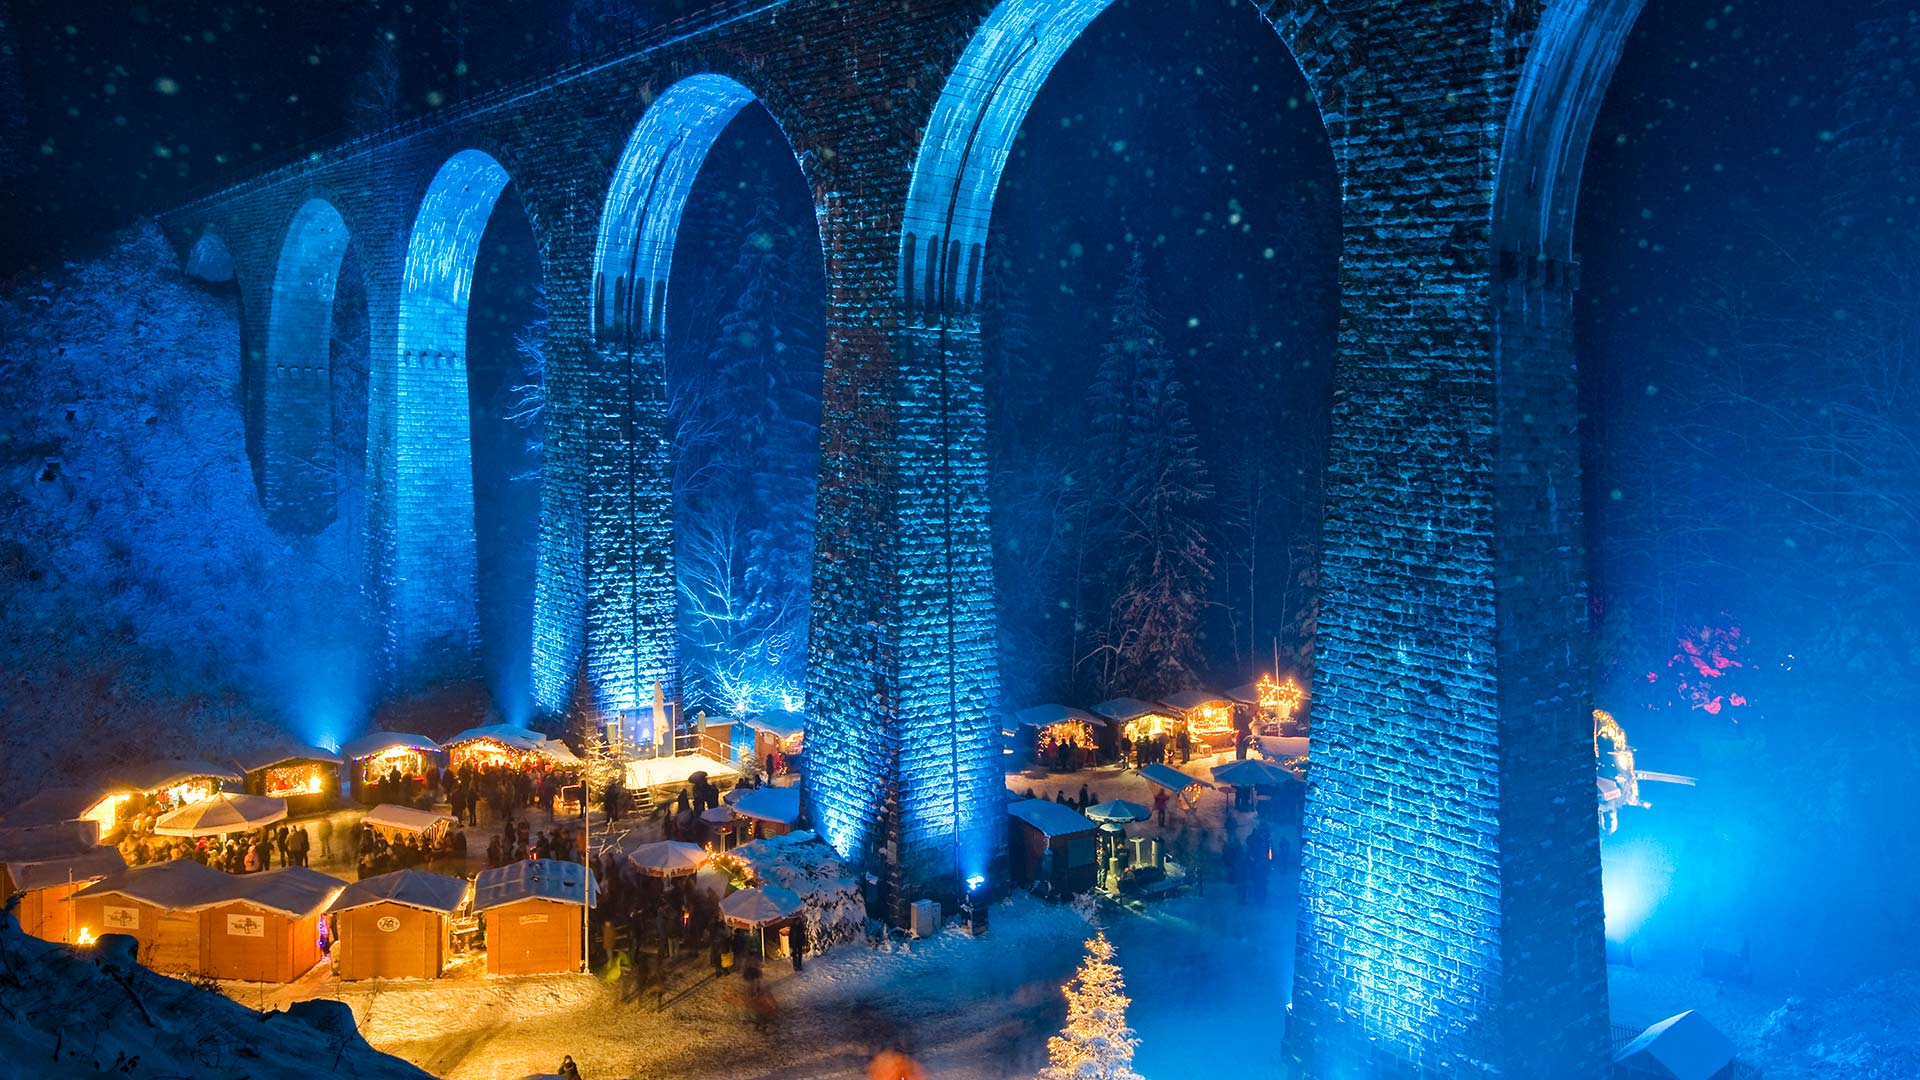 Christmas In Europe Wallpaper.Christmas Markets In Europe L 7 Offbeat Awesome Markets To